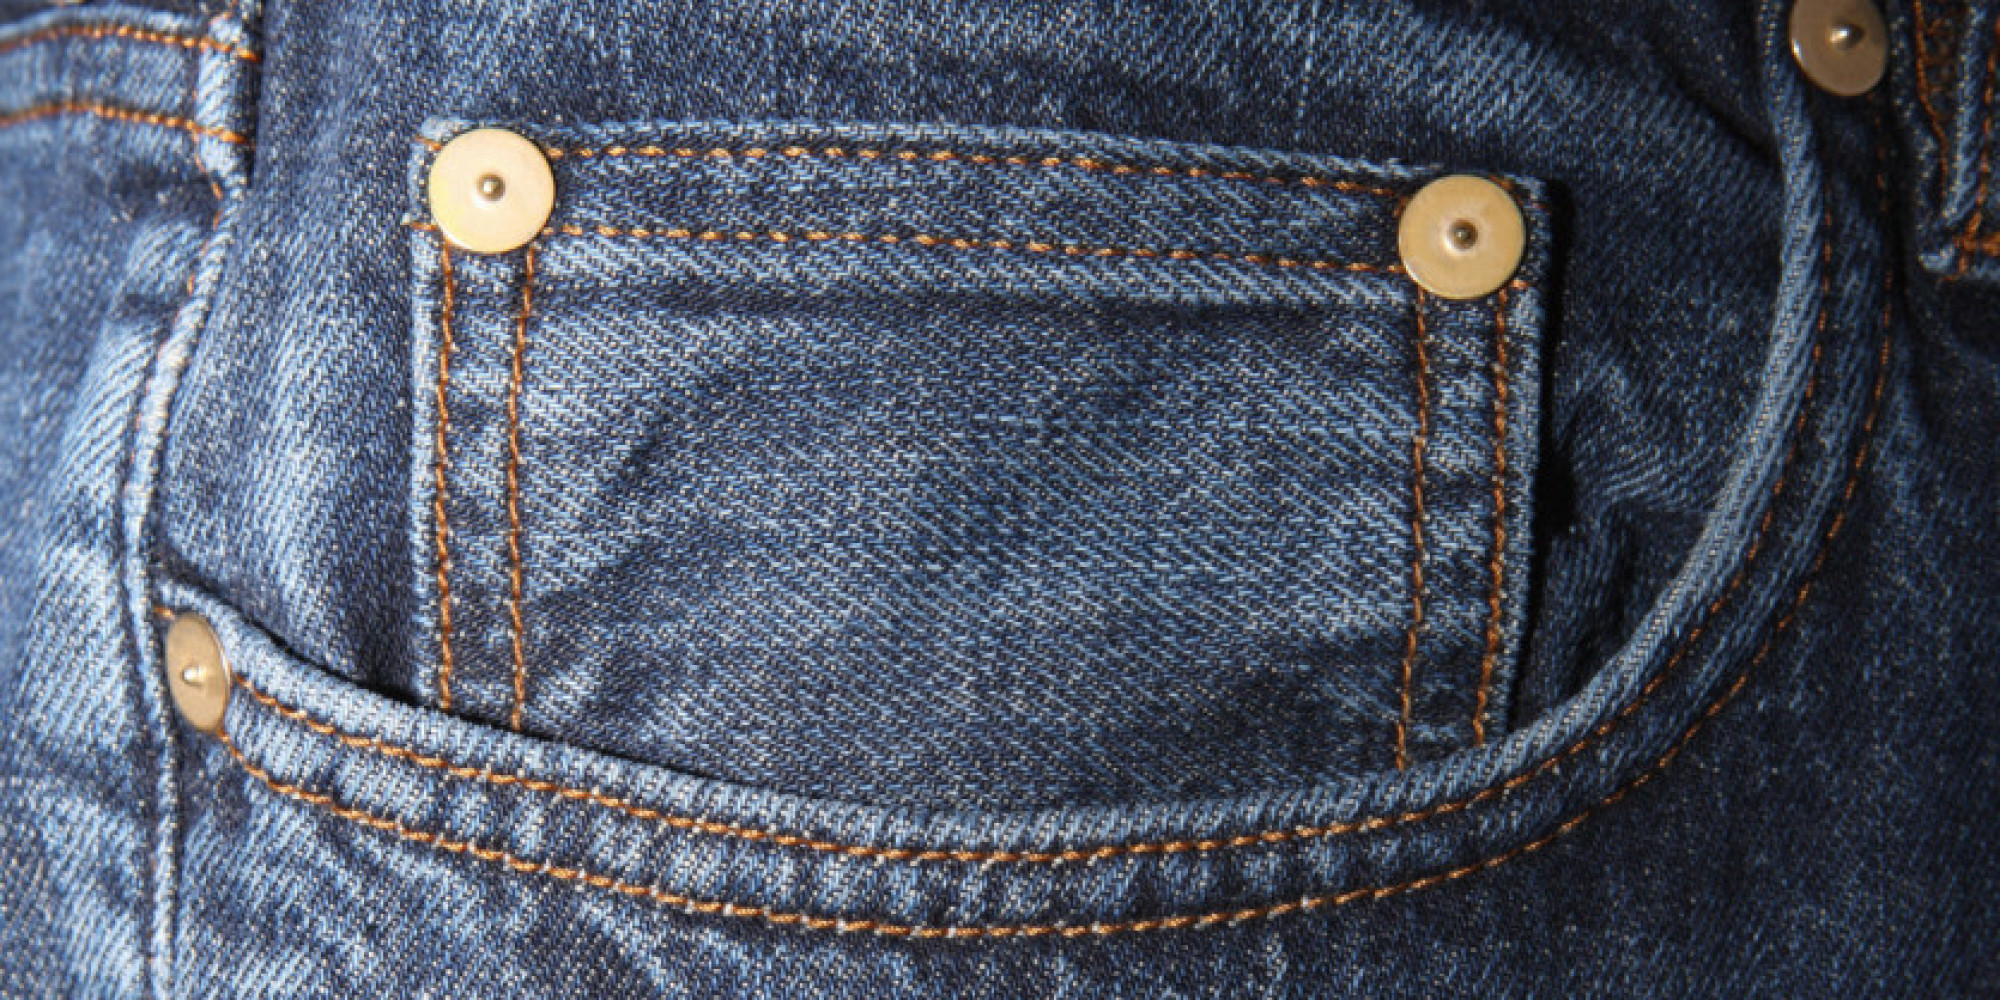 The Mystery Of The Small Jean Pocket Has Finally Been Solved